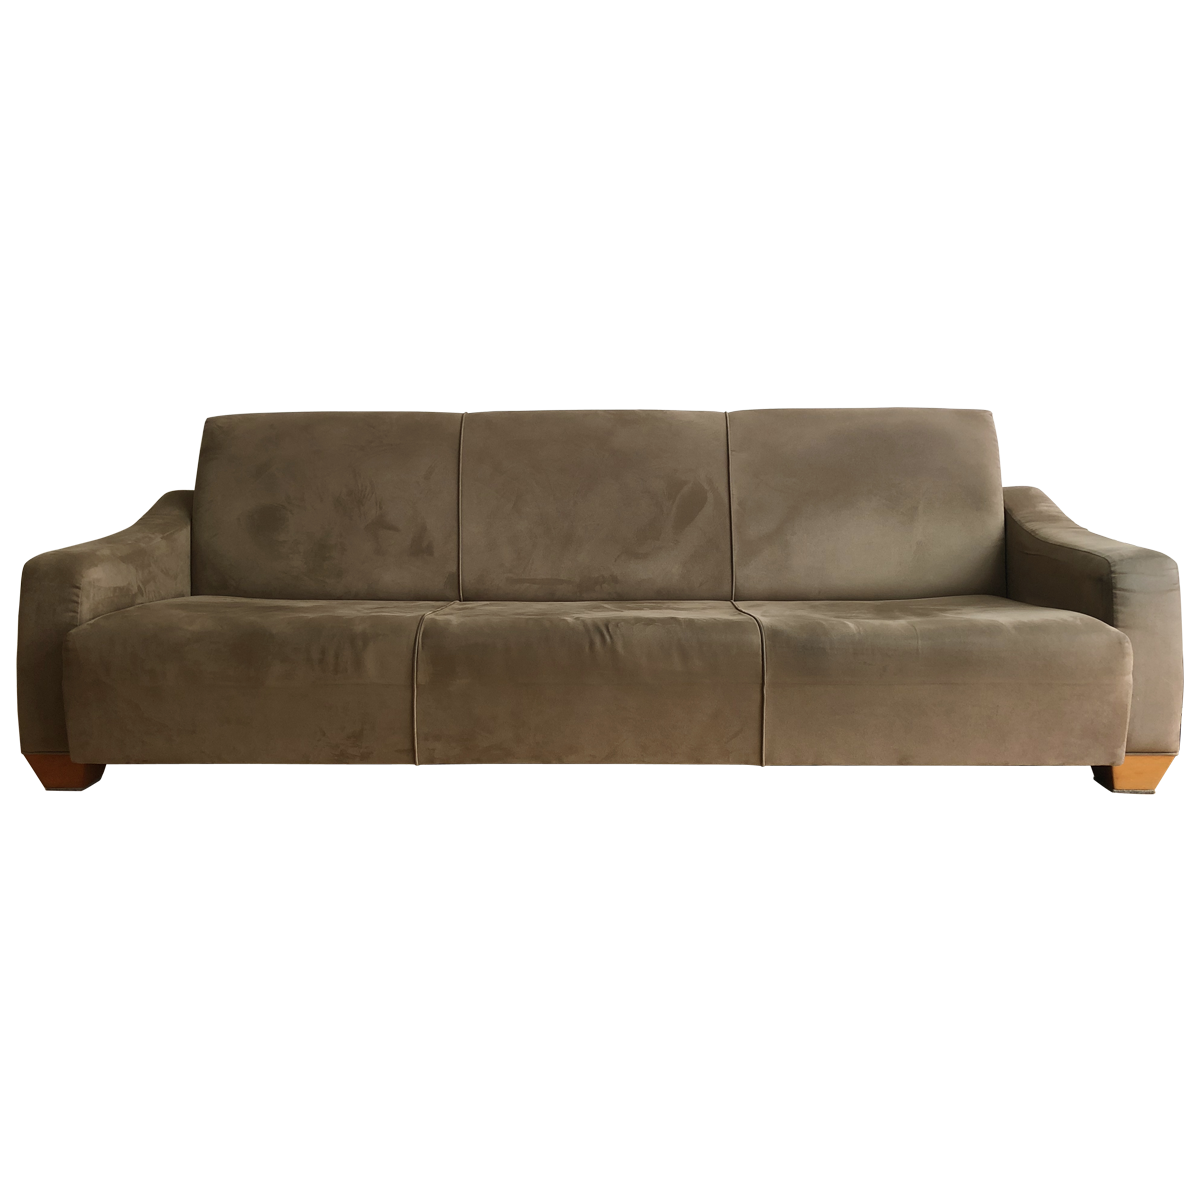 Couch back view png. Viyet designer furniture seating